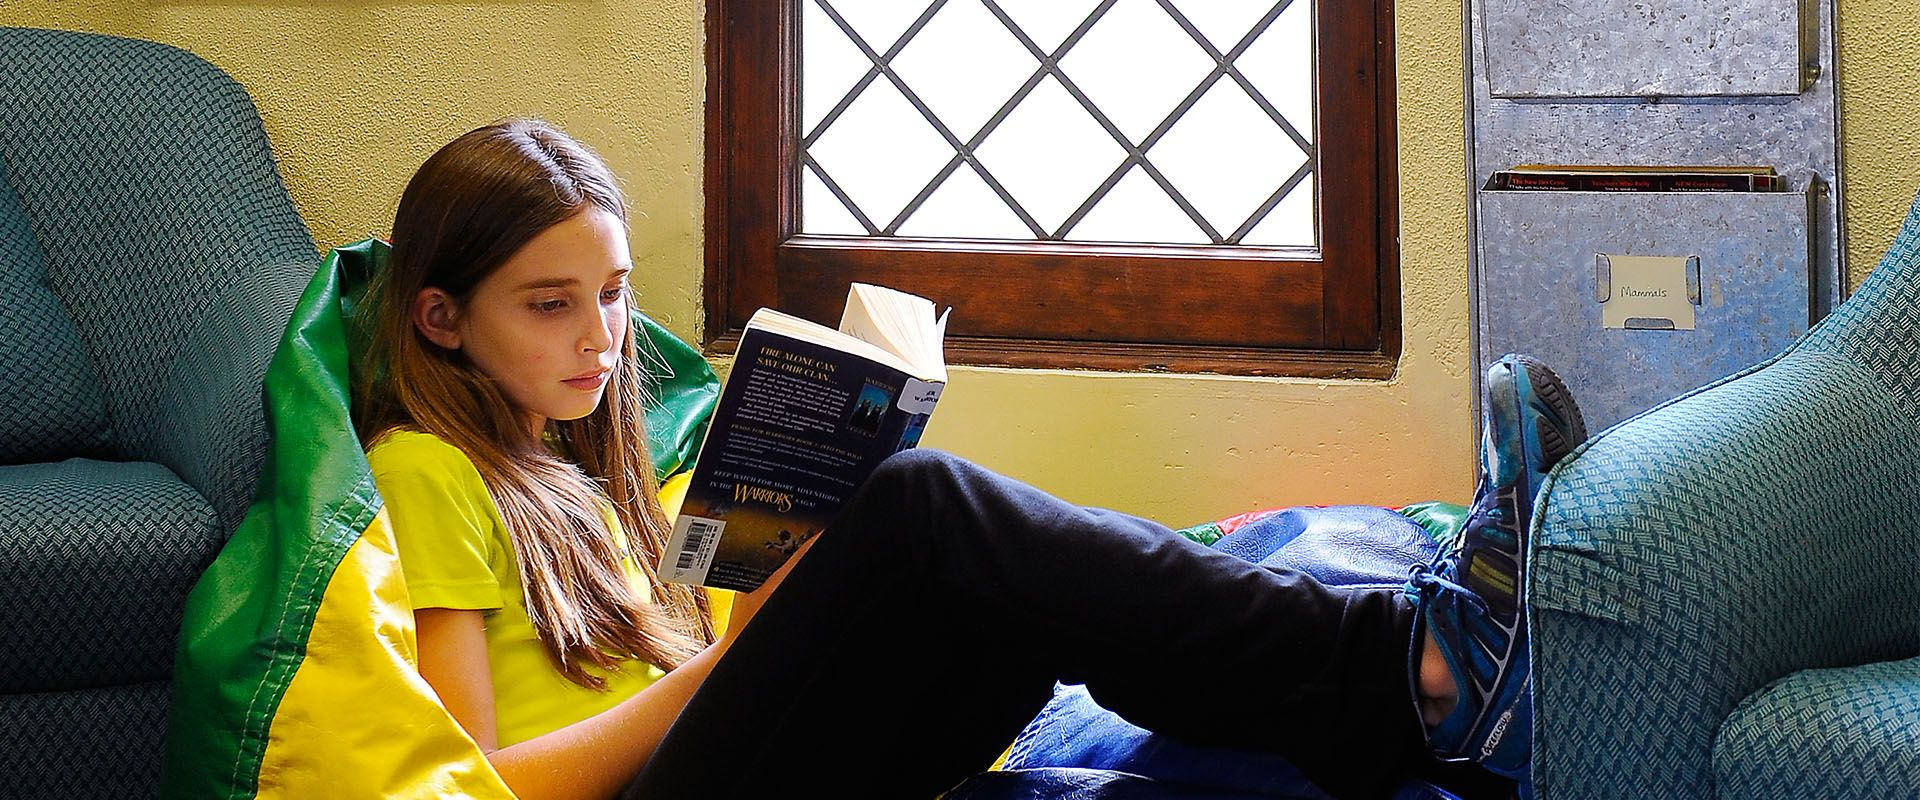 Girl reading book on bean bag chair